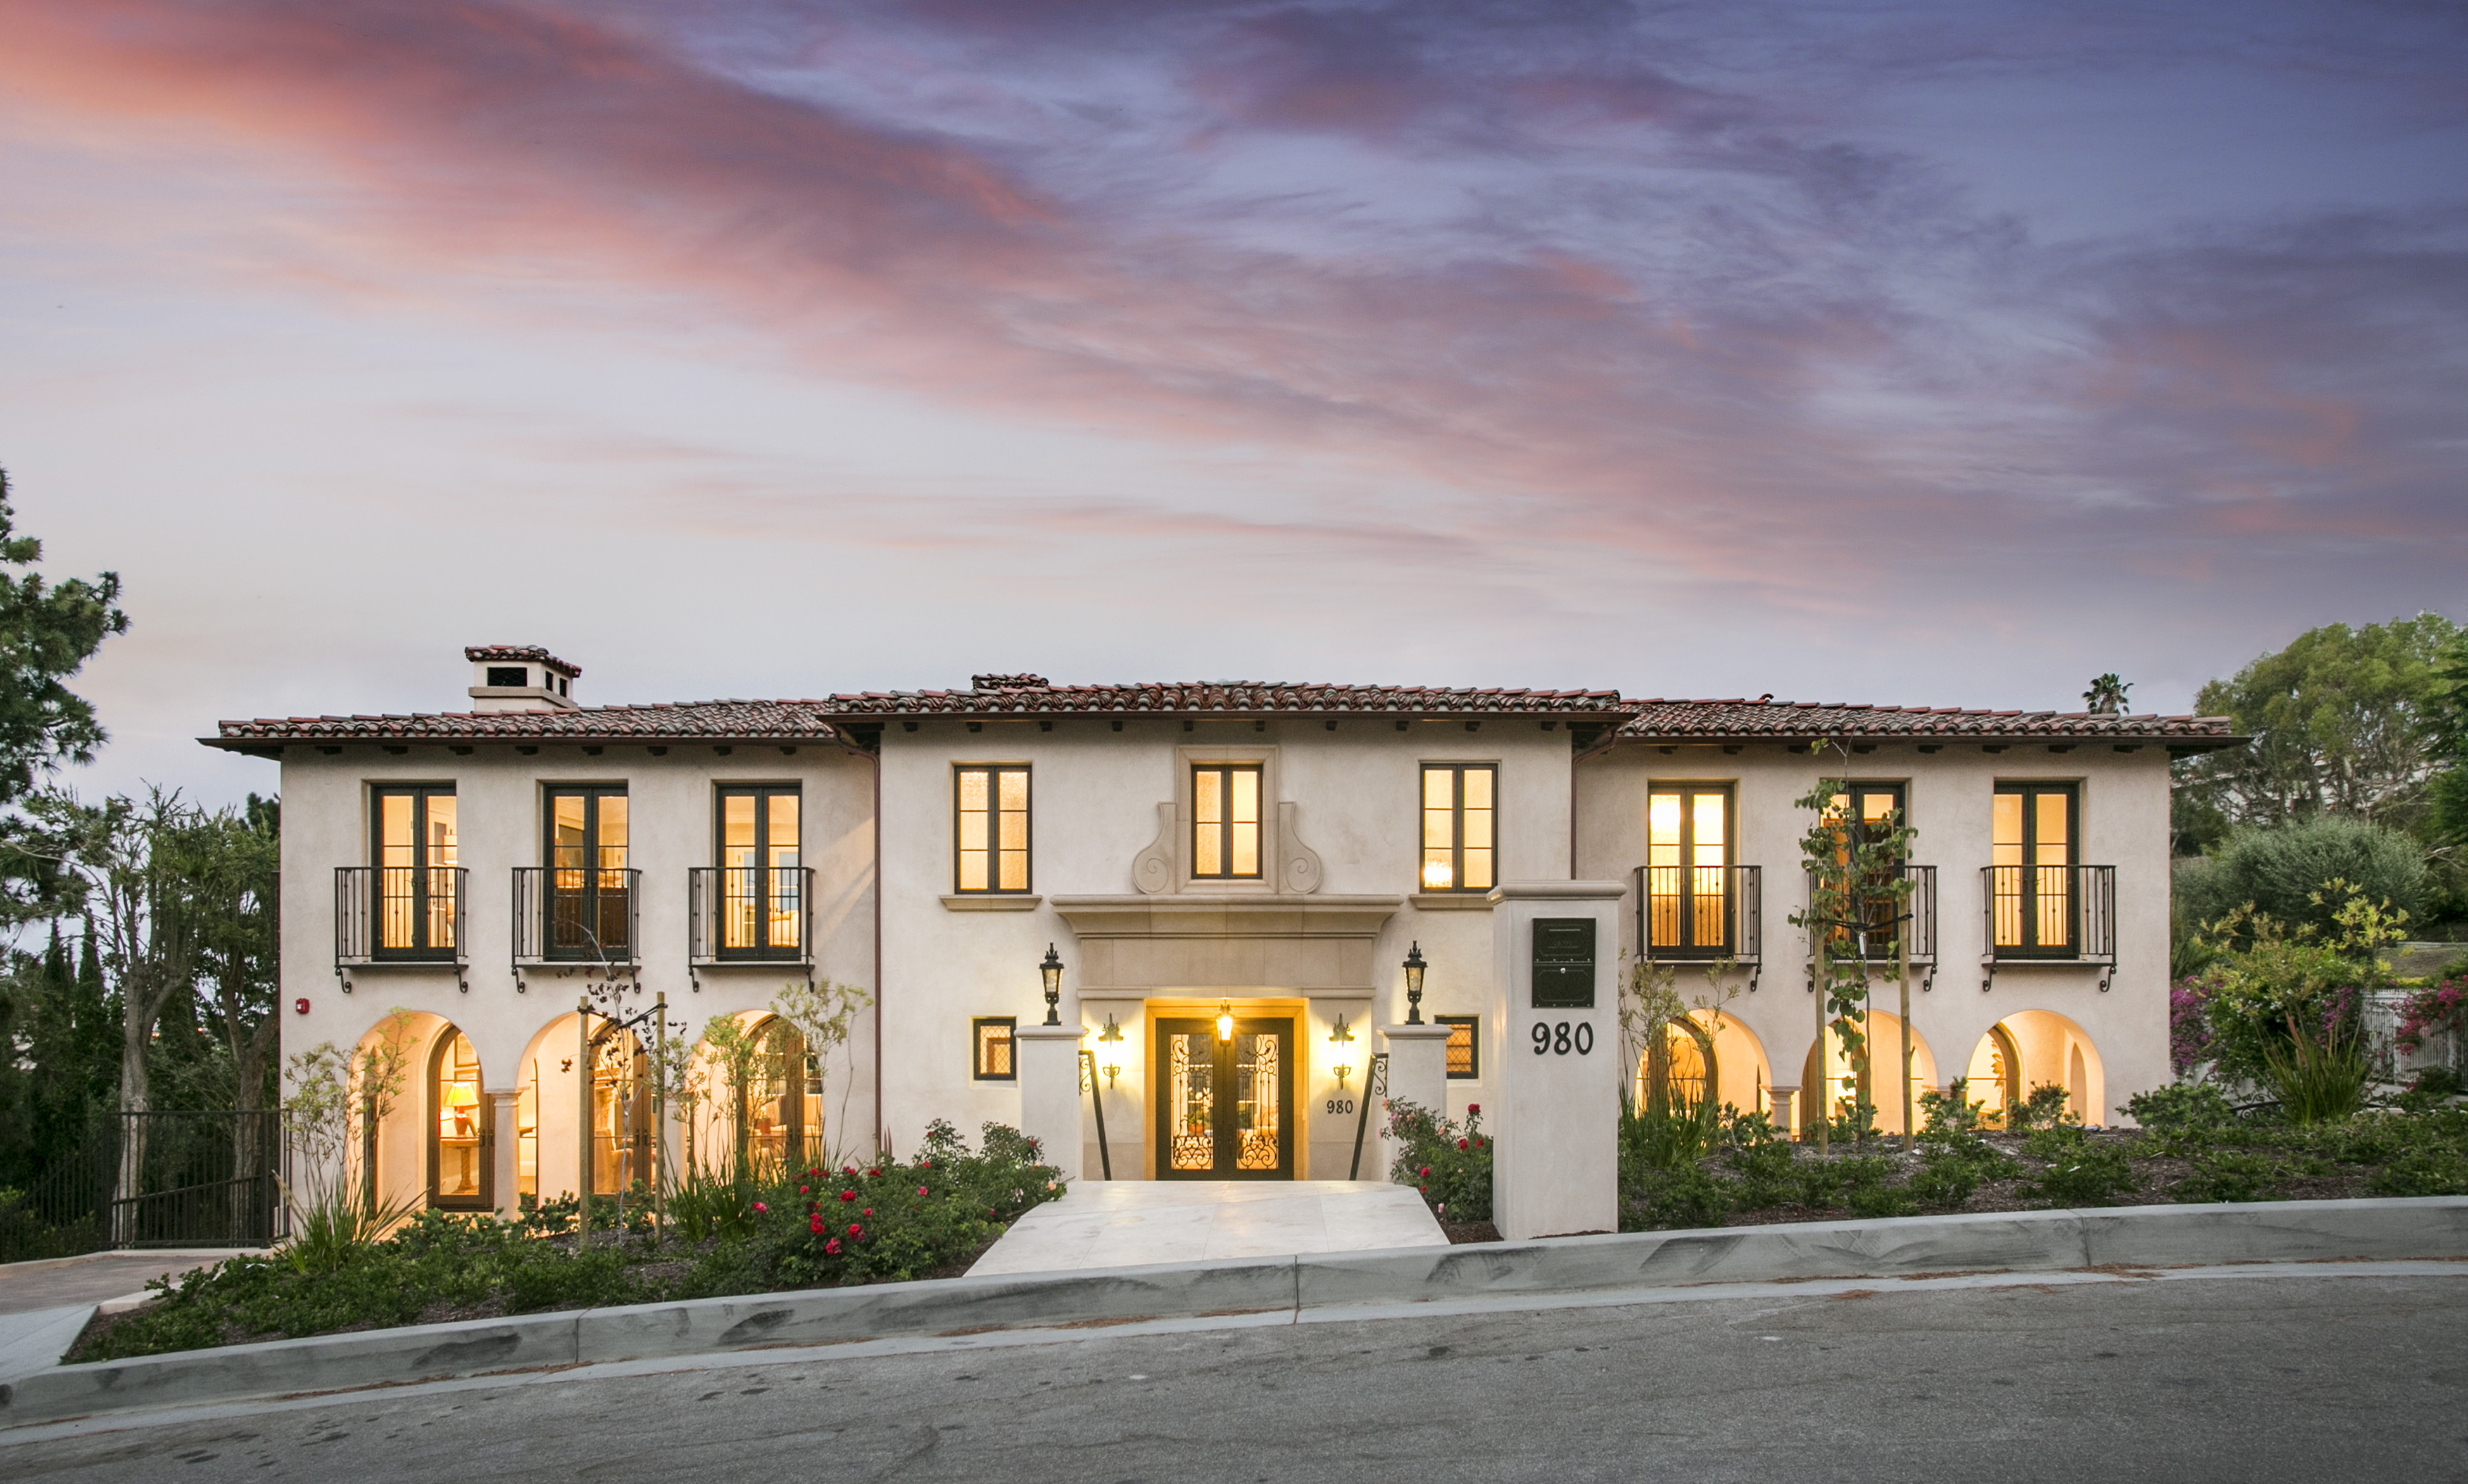 Single Family Home for Sale at New Construction 980 Via Rincon Palos Verdes Estates, California, 90274 United States